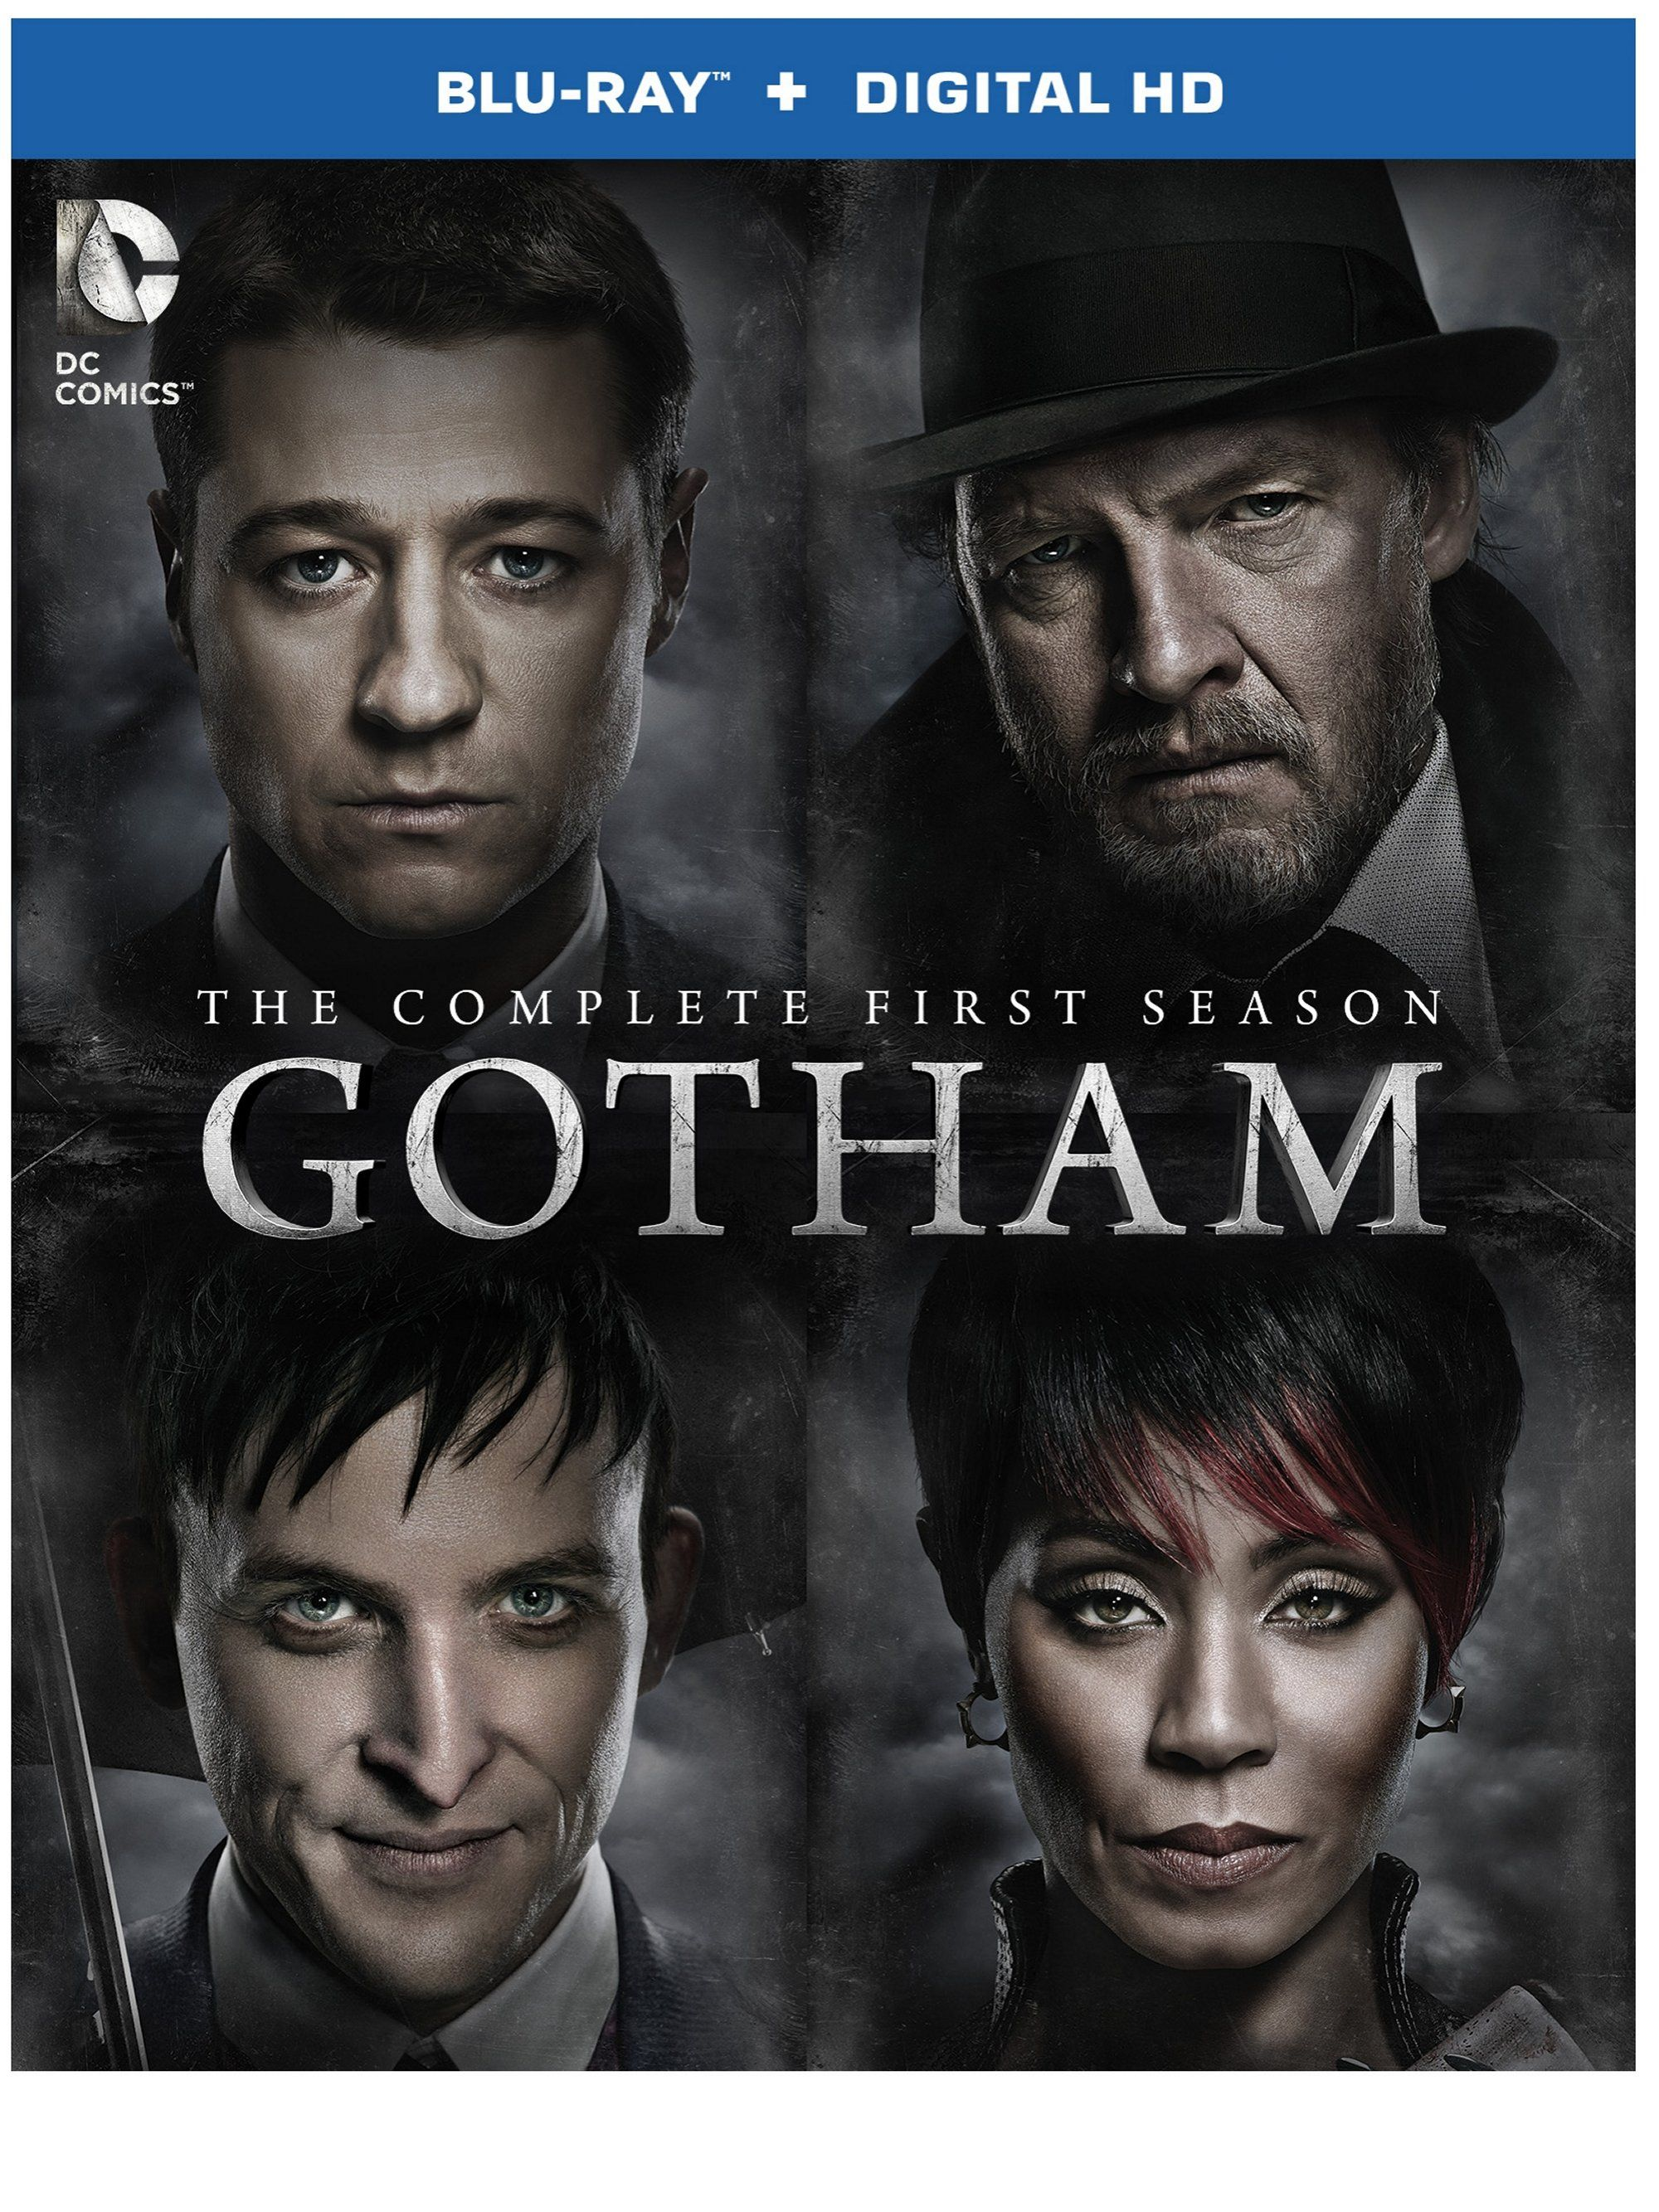 Win Gotham: The Complete First Season on Blu-ray | Collider